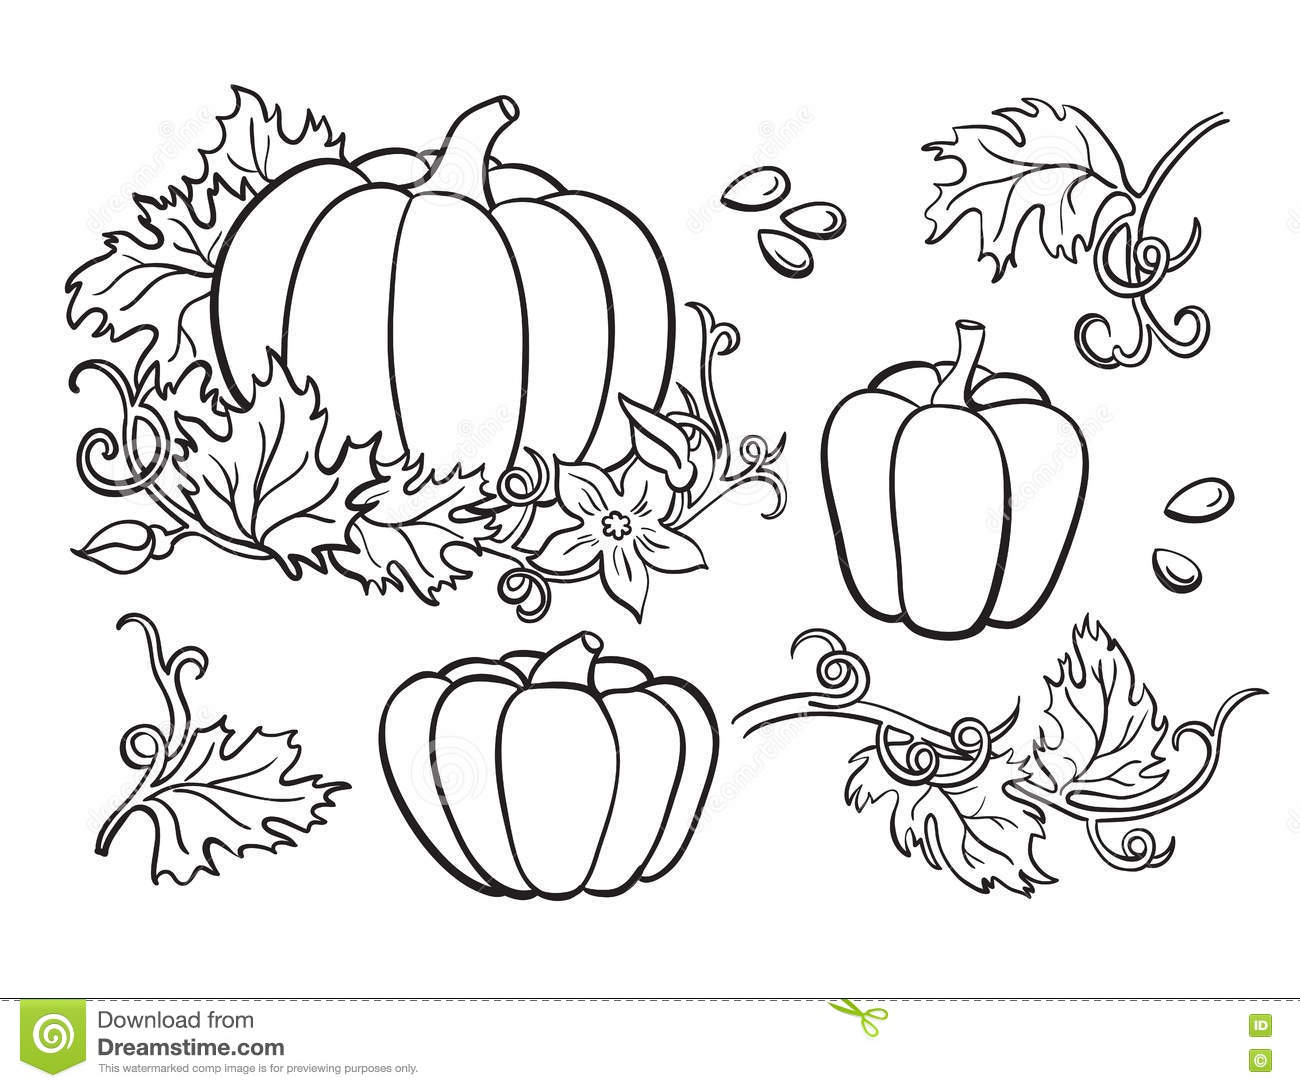 Pumpkin drawing set. Isolated outline vegetable, plant,